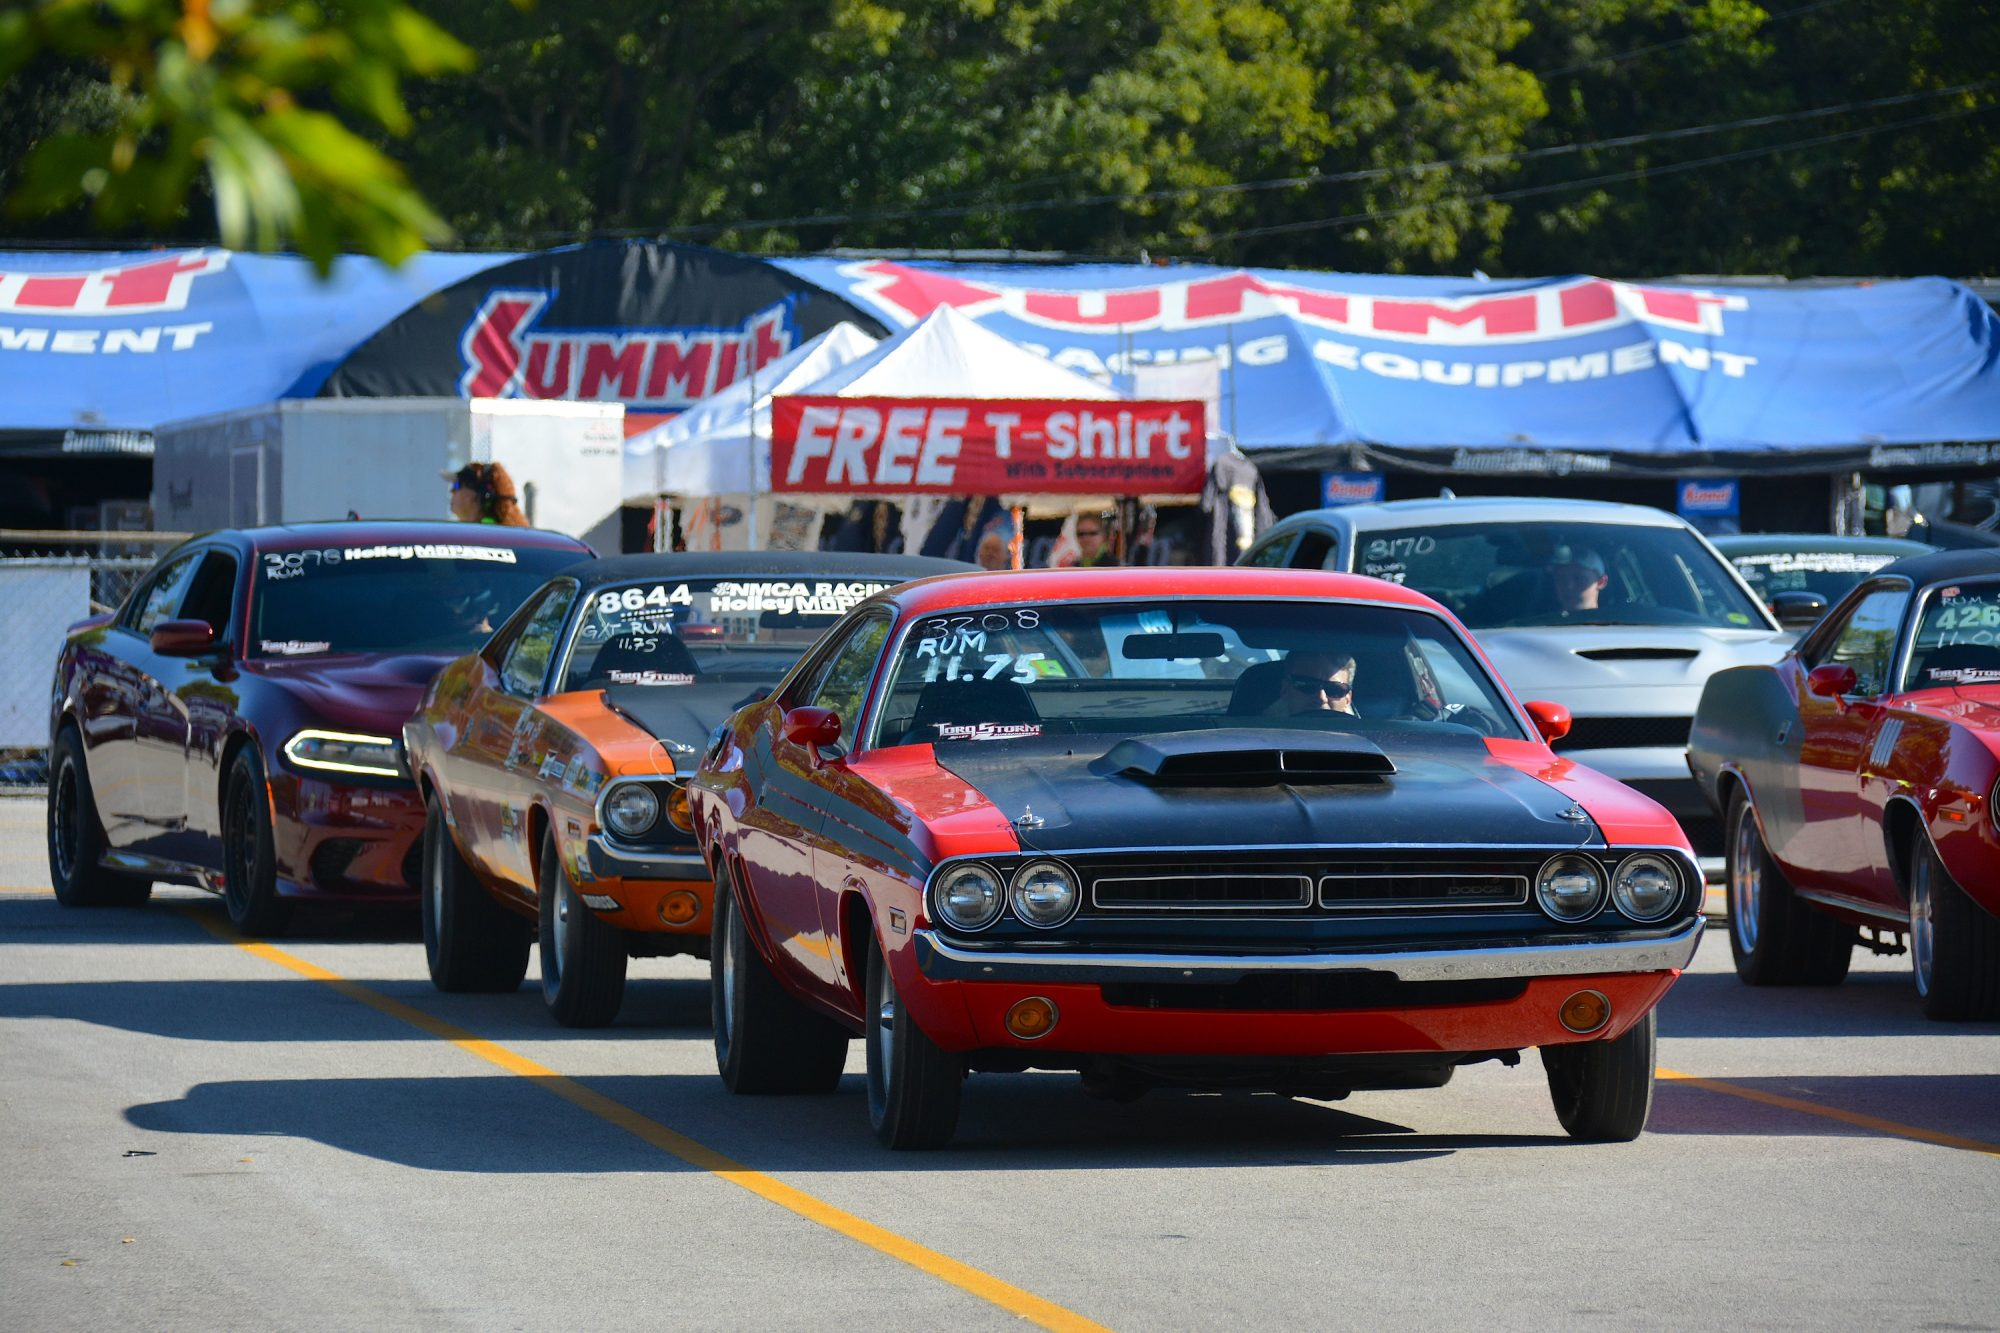 Row of Dodge vehicles getting ready to drag race